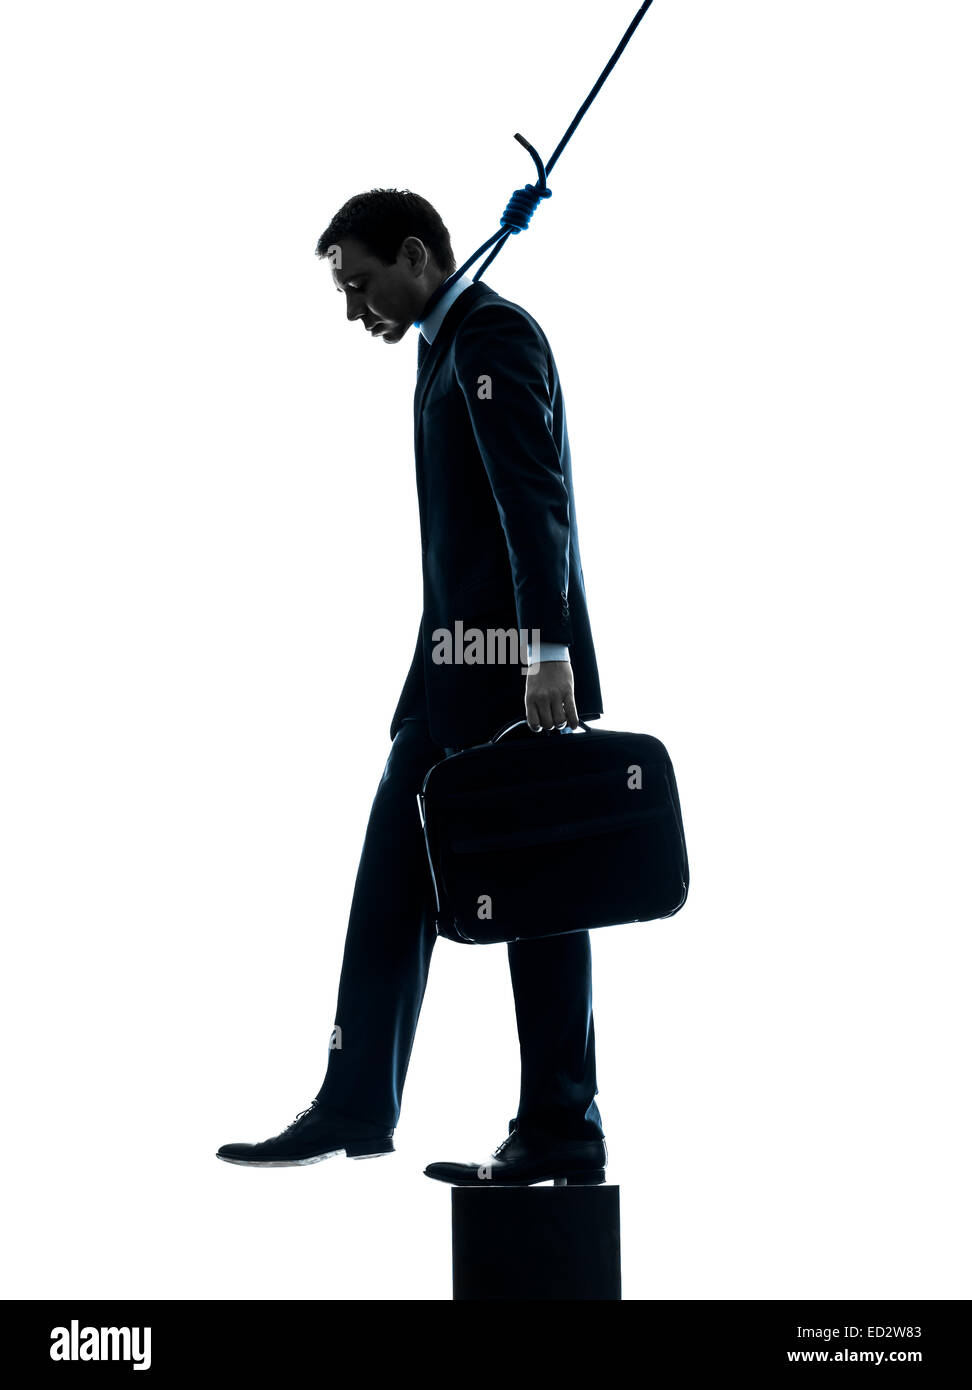 one man business man suicidal hanging in silhouette studio isolated